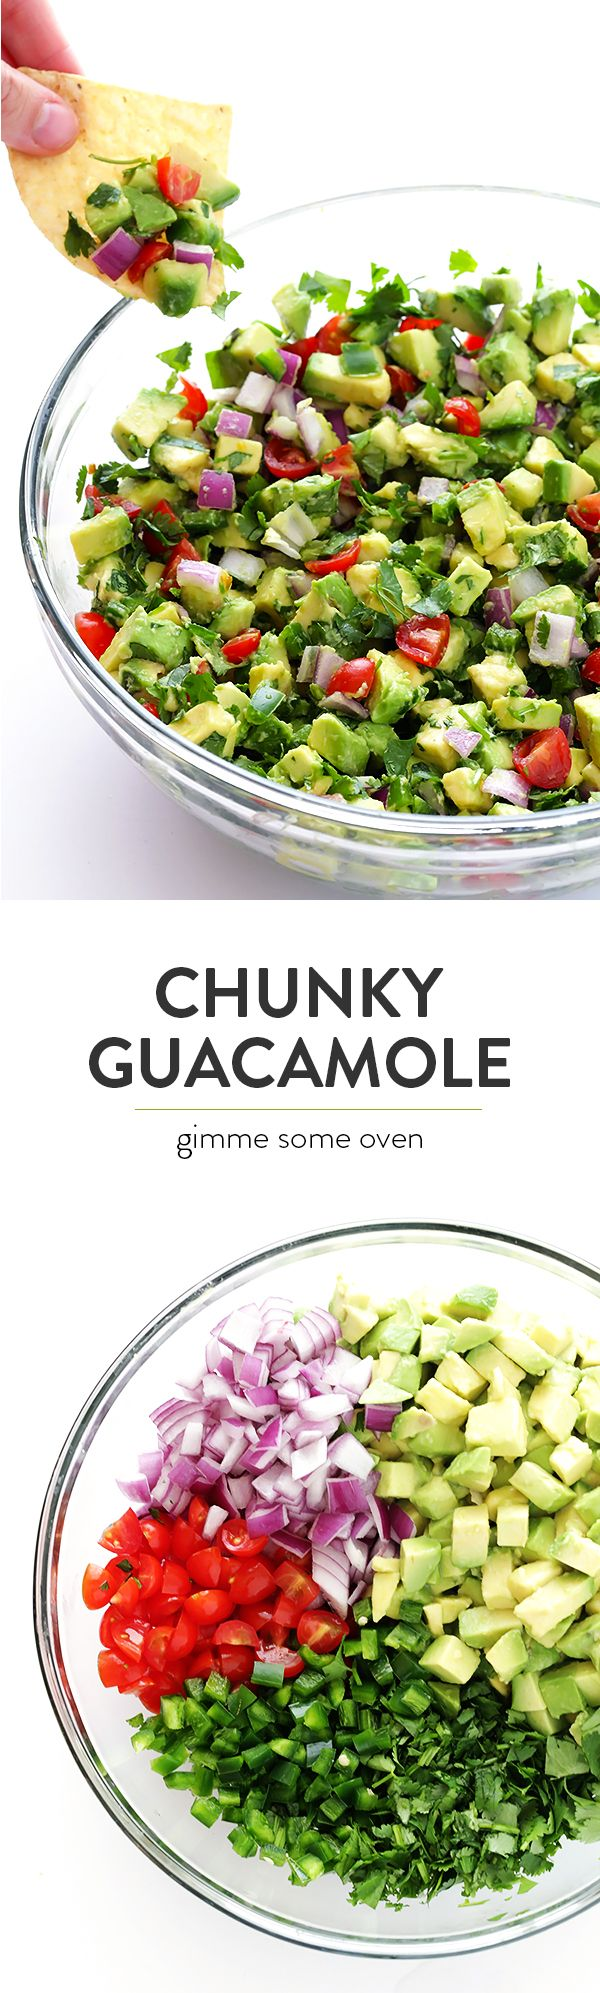 This Chunky Guacamole dip recipe is easy to make, and always a crowd pleaser! | http://gimmesomeoven.com